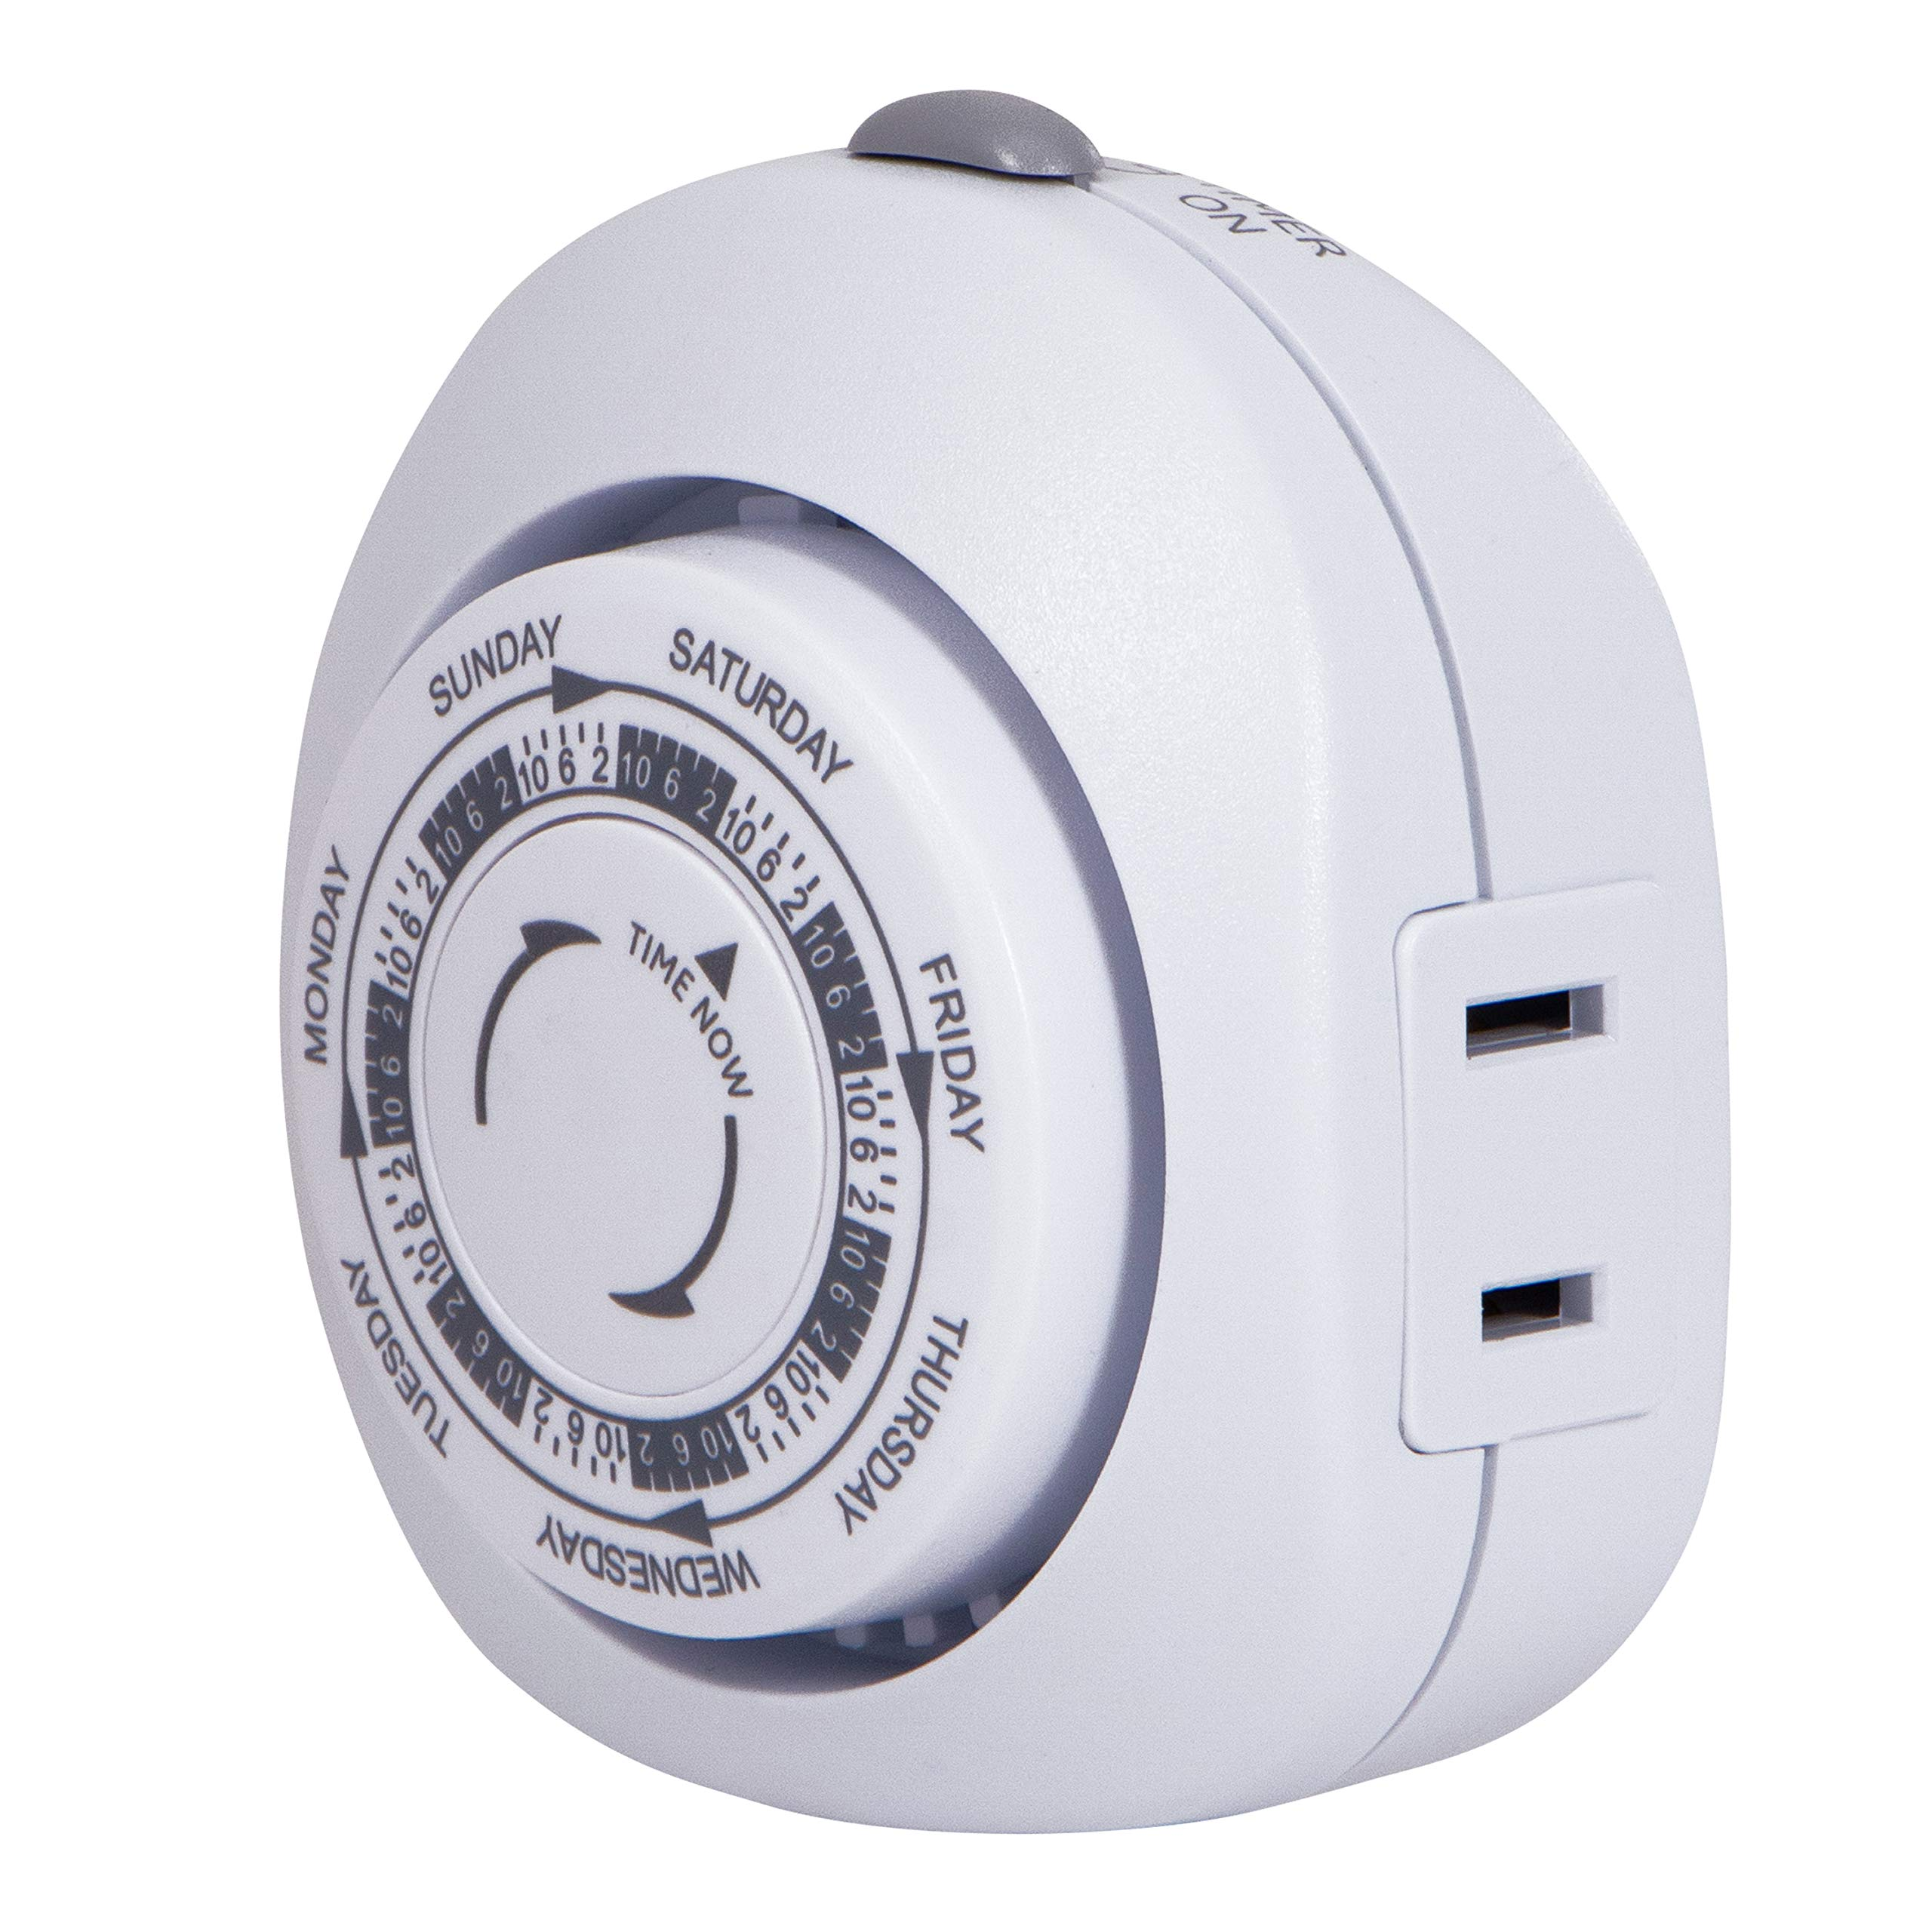 GE 7-Day Vacation Indoor Plug-In Mechanical Timer, 1 Polarized Outlet, Pre-Programmed On/Off Times for Home Security, Ideal for Lamps, Seasonal Lighting, Small Appliances, 15151,Vacation 1-Outlet | Gray/White